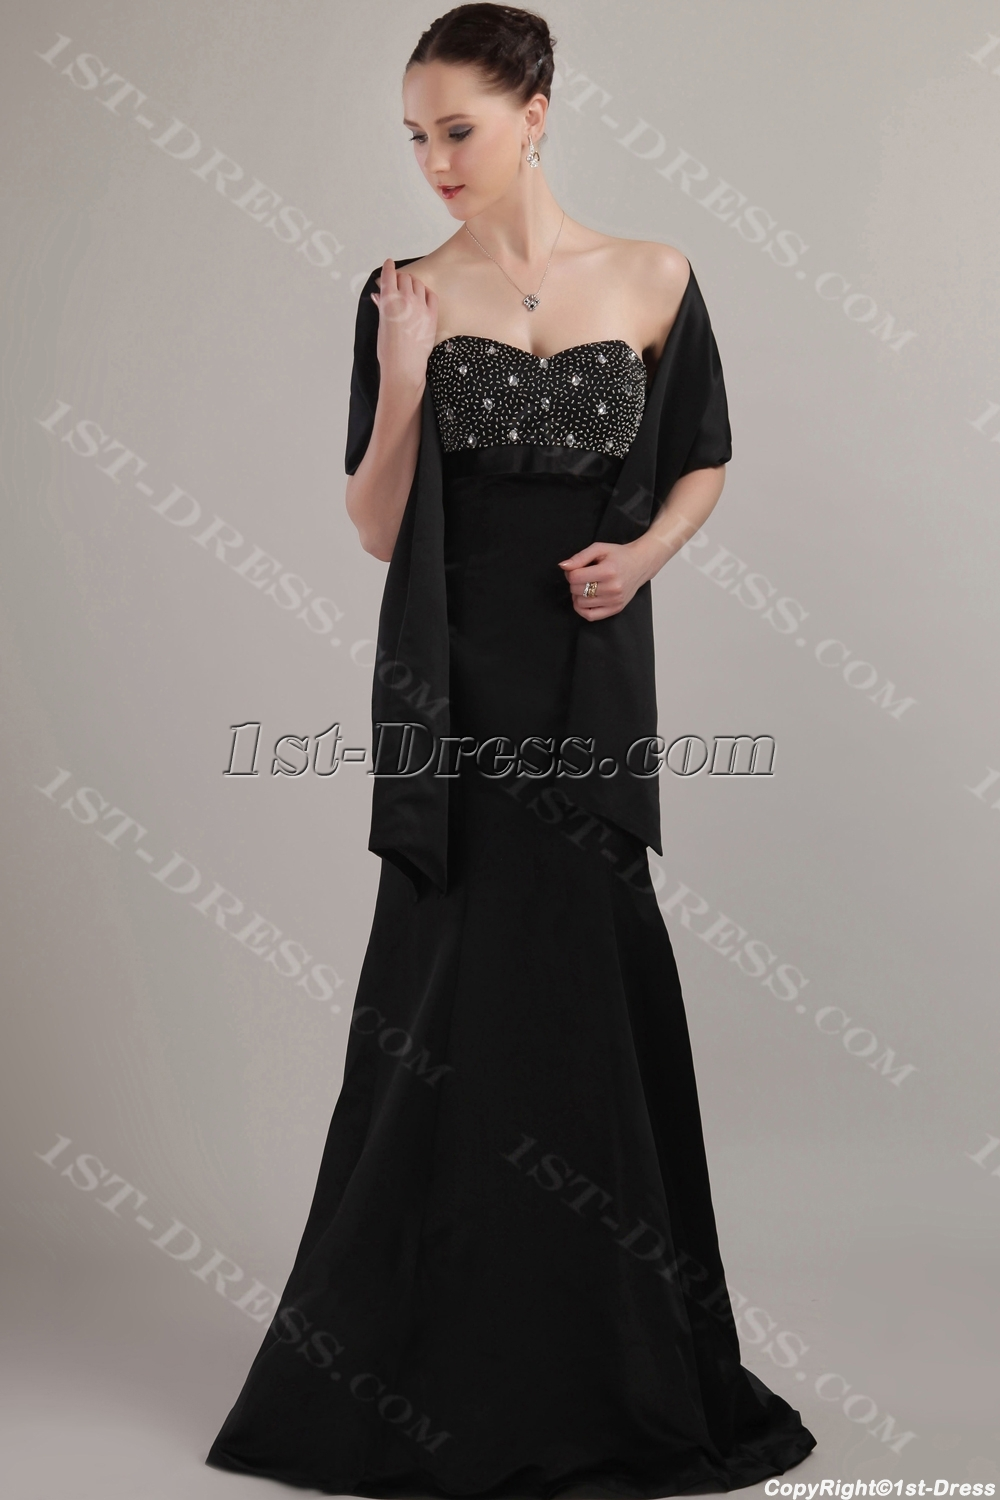 Charming Formal Black Mother of Bride Dress with Shawl IMG_3131:1st ...